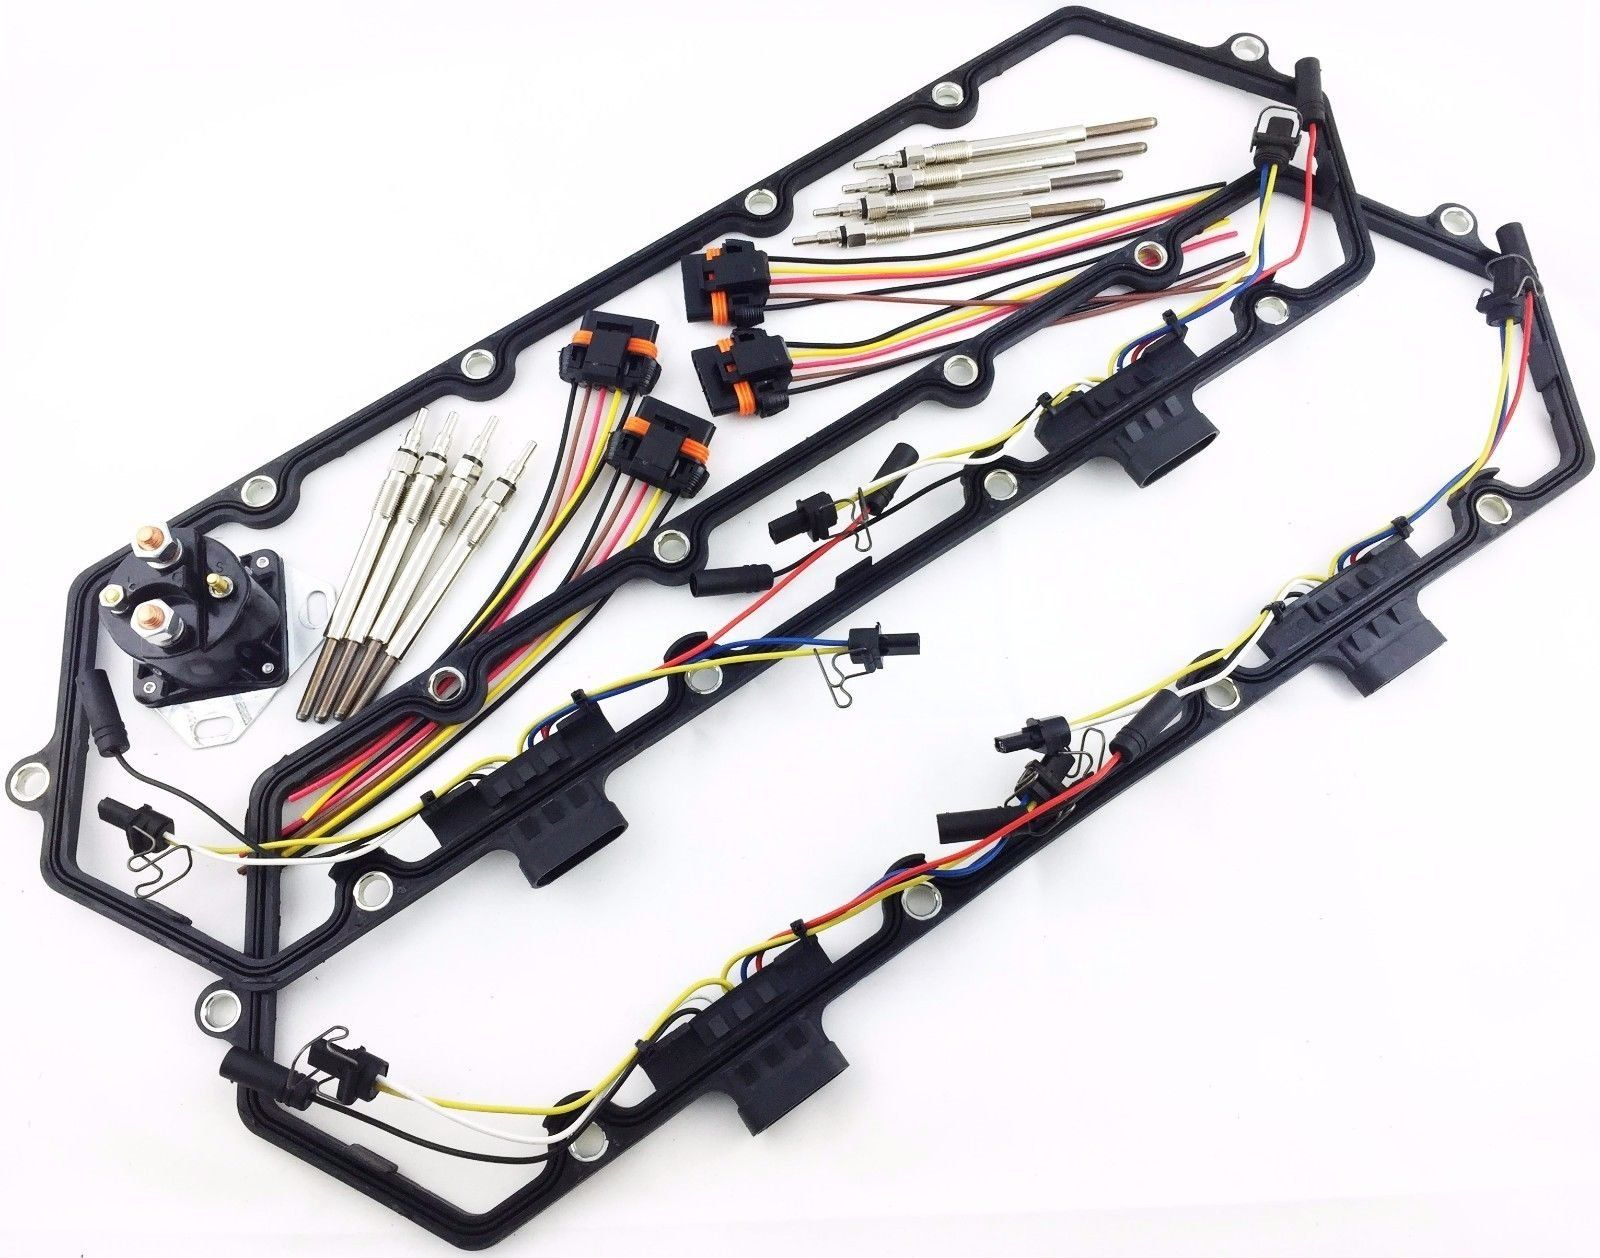 medium resolution of 94 97 powerstroke ford 7 3l valve cover gaskets injector glow plug relay harness awesome products selected by anna churchill